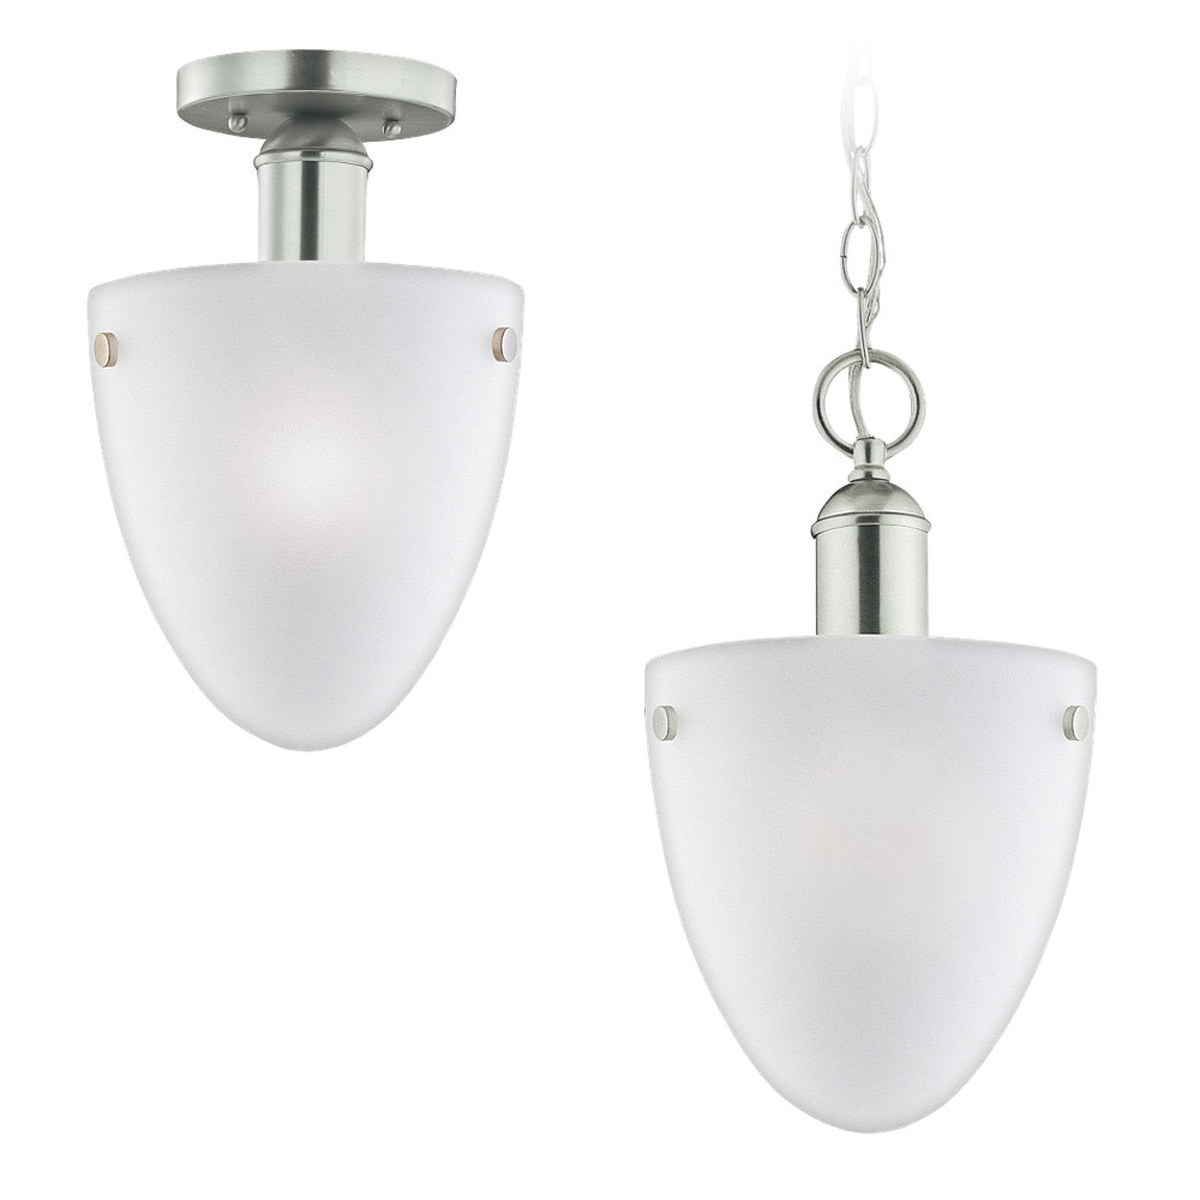 Sea Gull Lighting Metropolis 1 Light Pendant Convertible in Brushed Nickel 51035-962